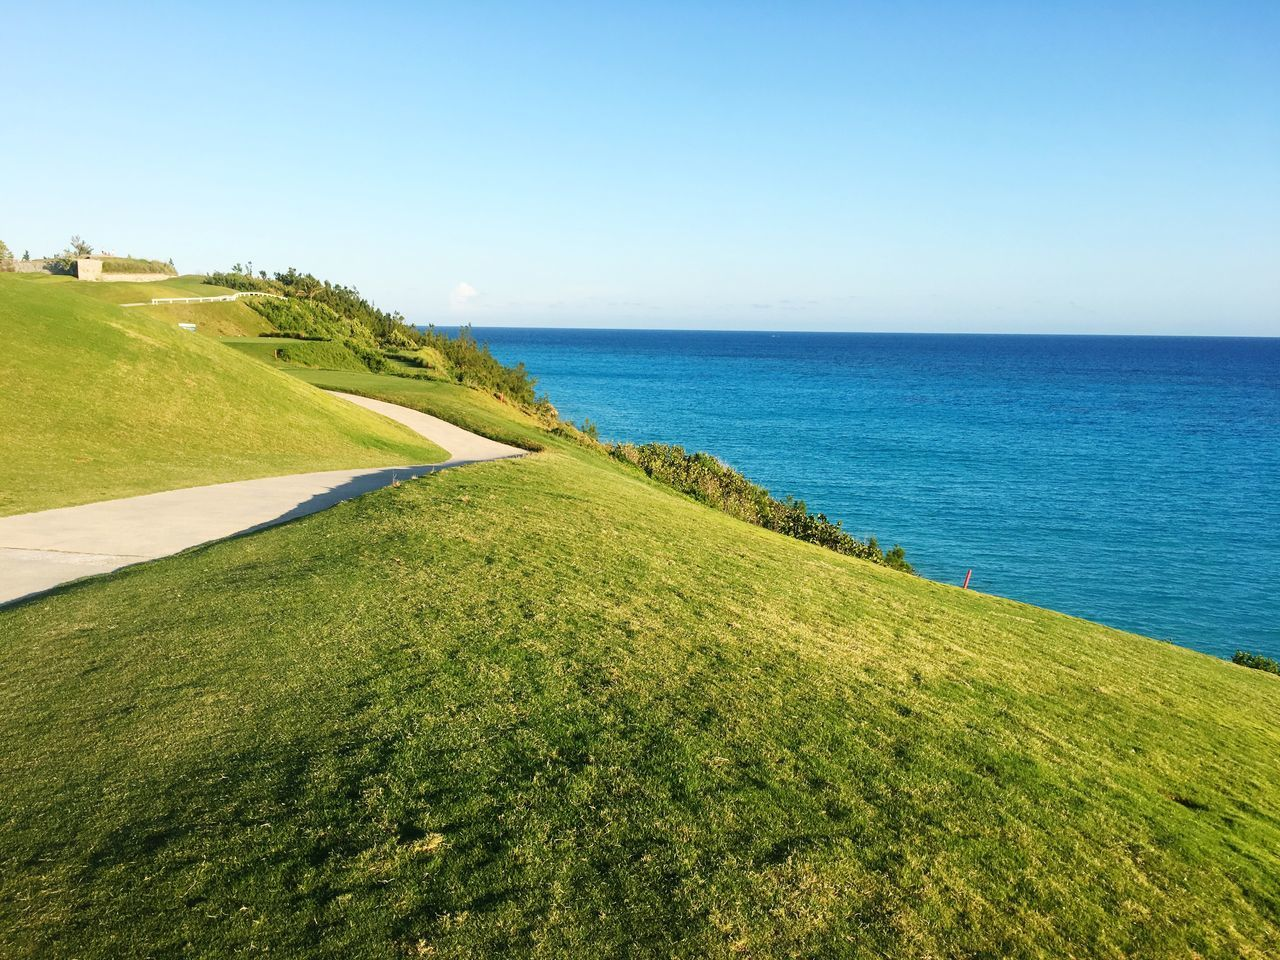 Sea Tranquil Scene Scenics Nature Clear Sky Water Tranquility Horizon Over Water Grass Green Color Beauty In Nature Beach Day Blue No People Outdoors Sky Golf Course Golf Club